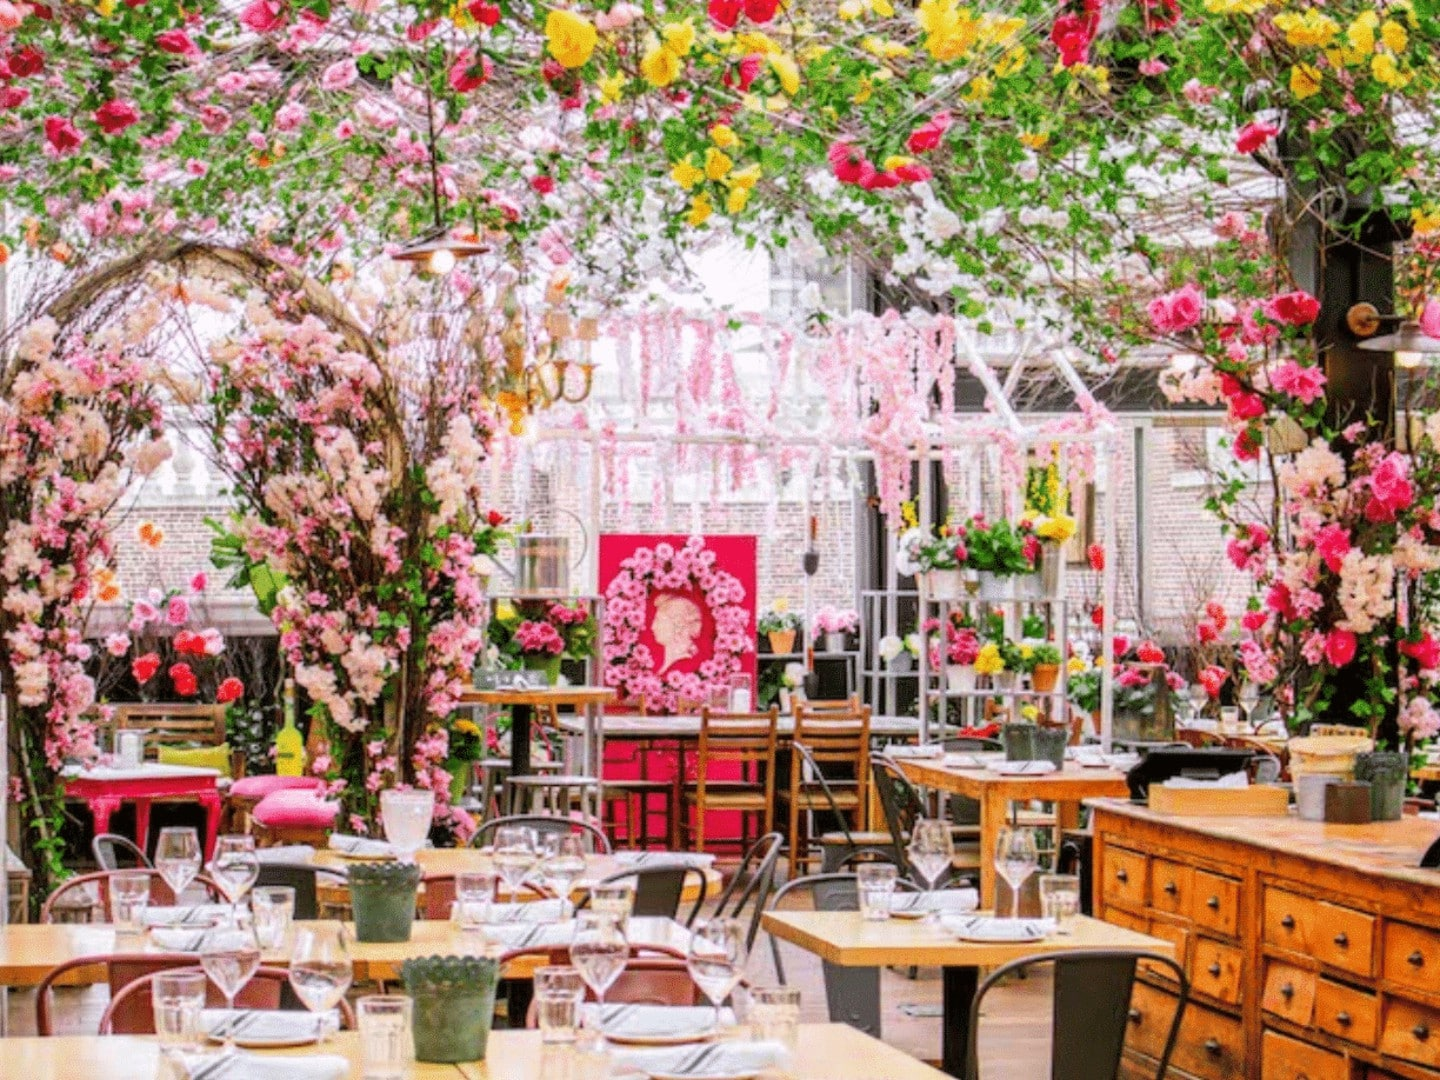 Instagrammable cafés in New York City